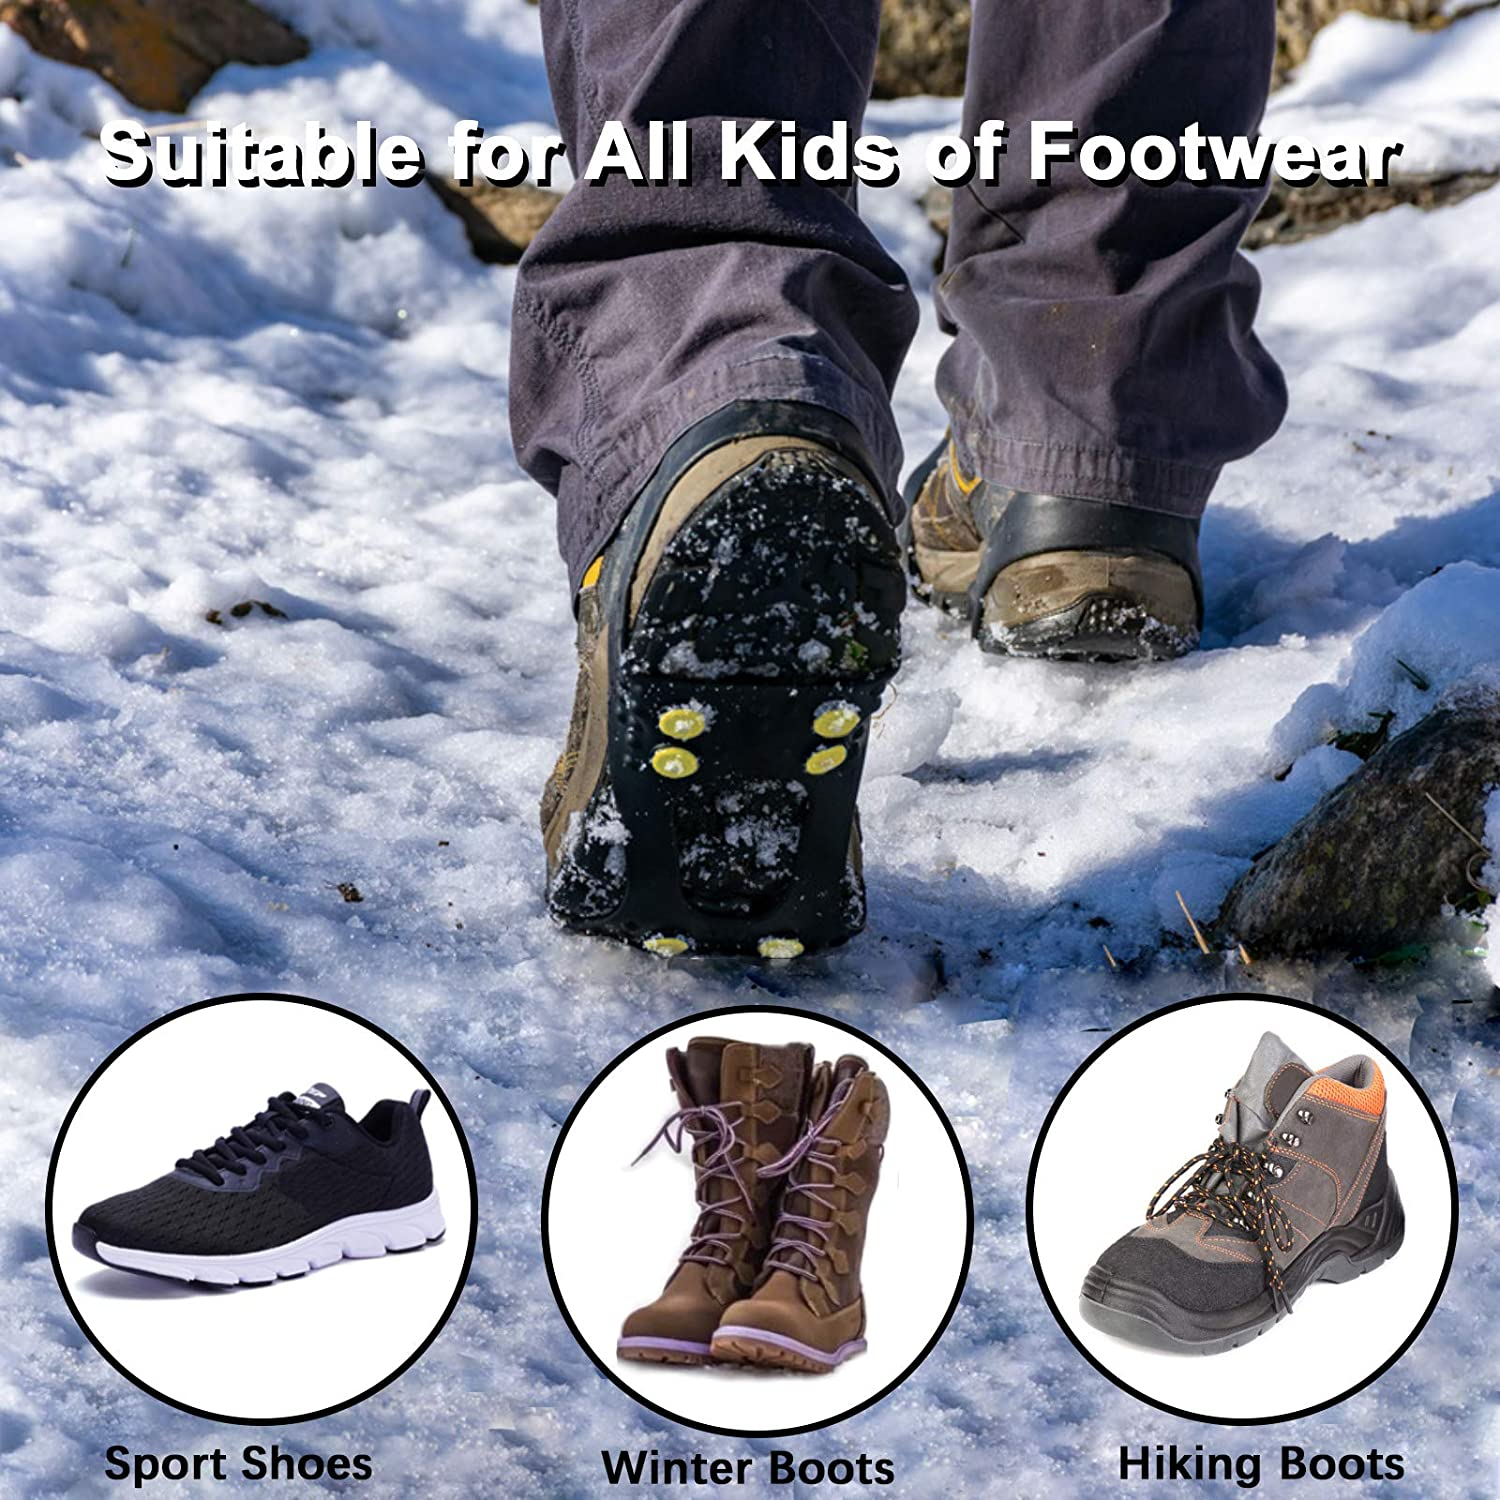 Note: Shoes NOT Included Extra 20 Studs Traction Cleat Anti Slip 10-Stud Crampons for Shoe//Boot Slip-on Stretch Footwear Men /& Women U UZOPI Ice /& Snow Grips